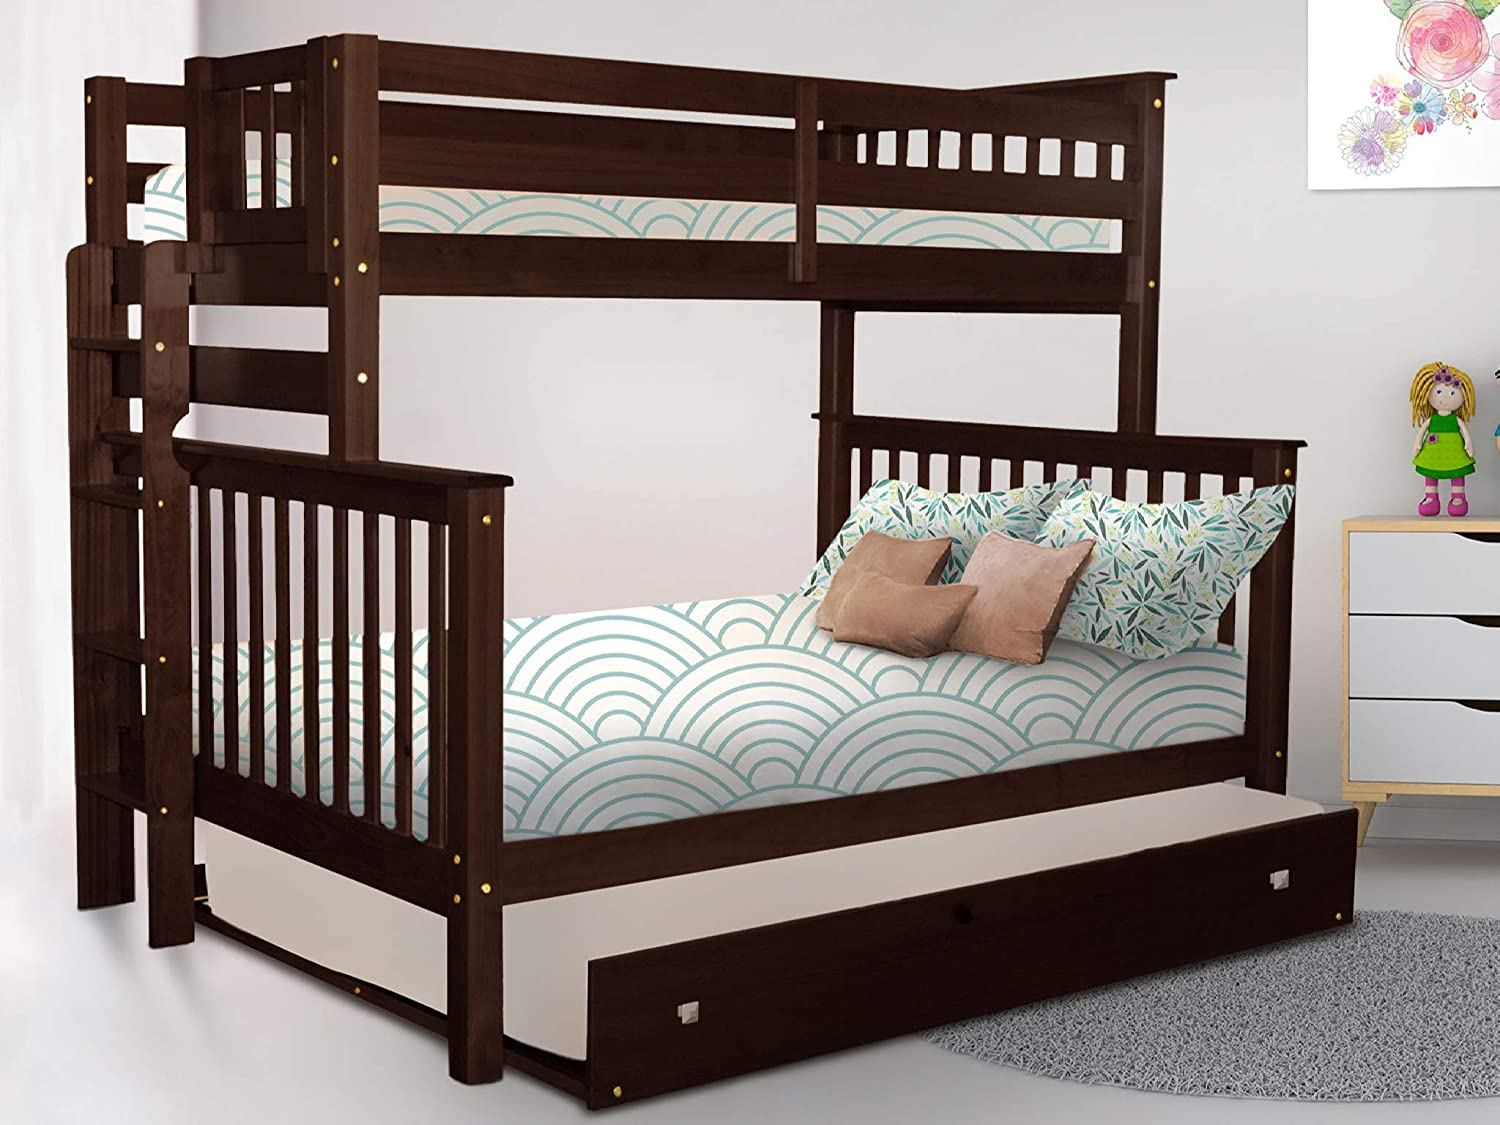 Buy Bedz King Bunk Beds Twin Over Full Mission Style With End Ladder And A Full Trundle Cappuccino Online In Turkey B00jcbwsj4